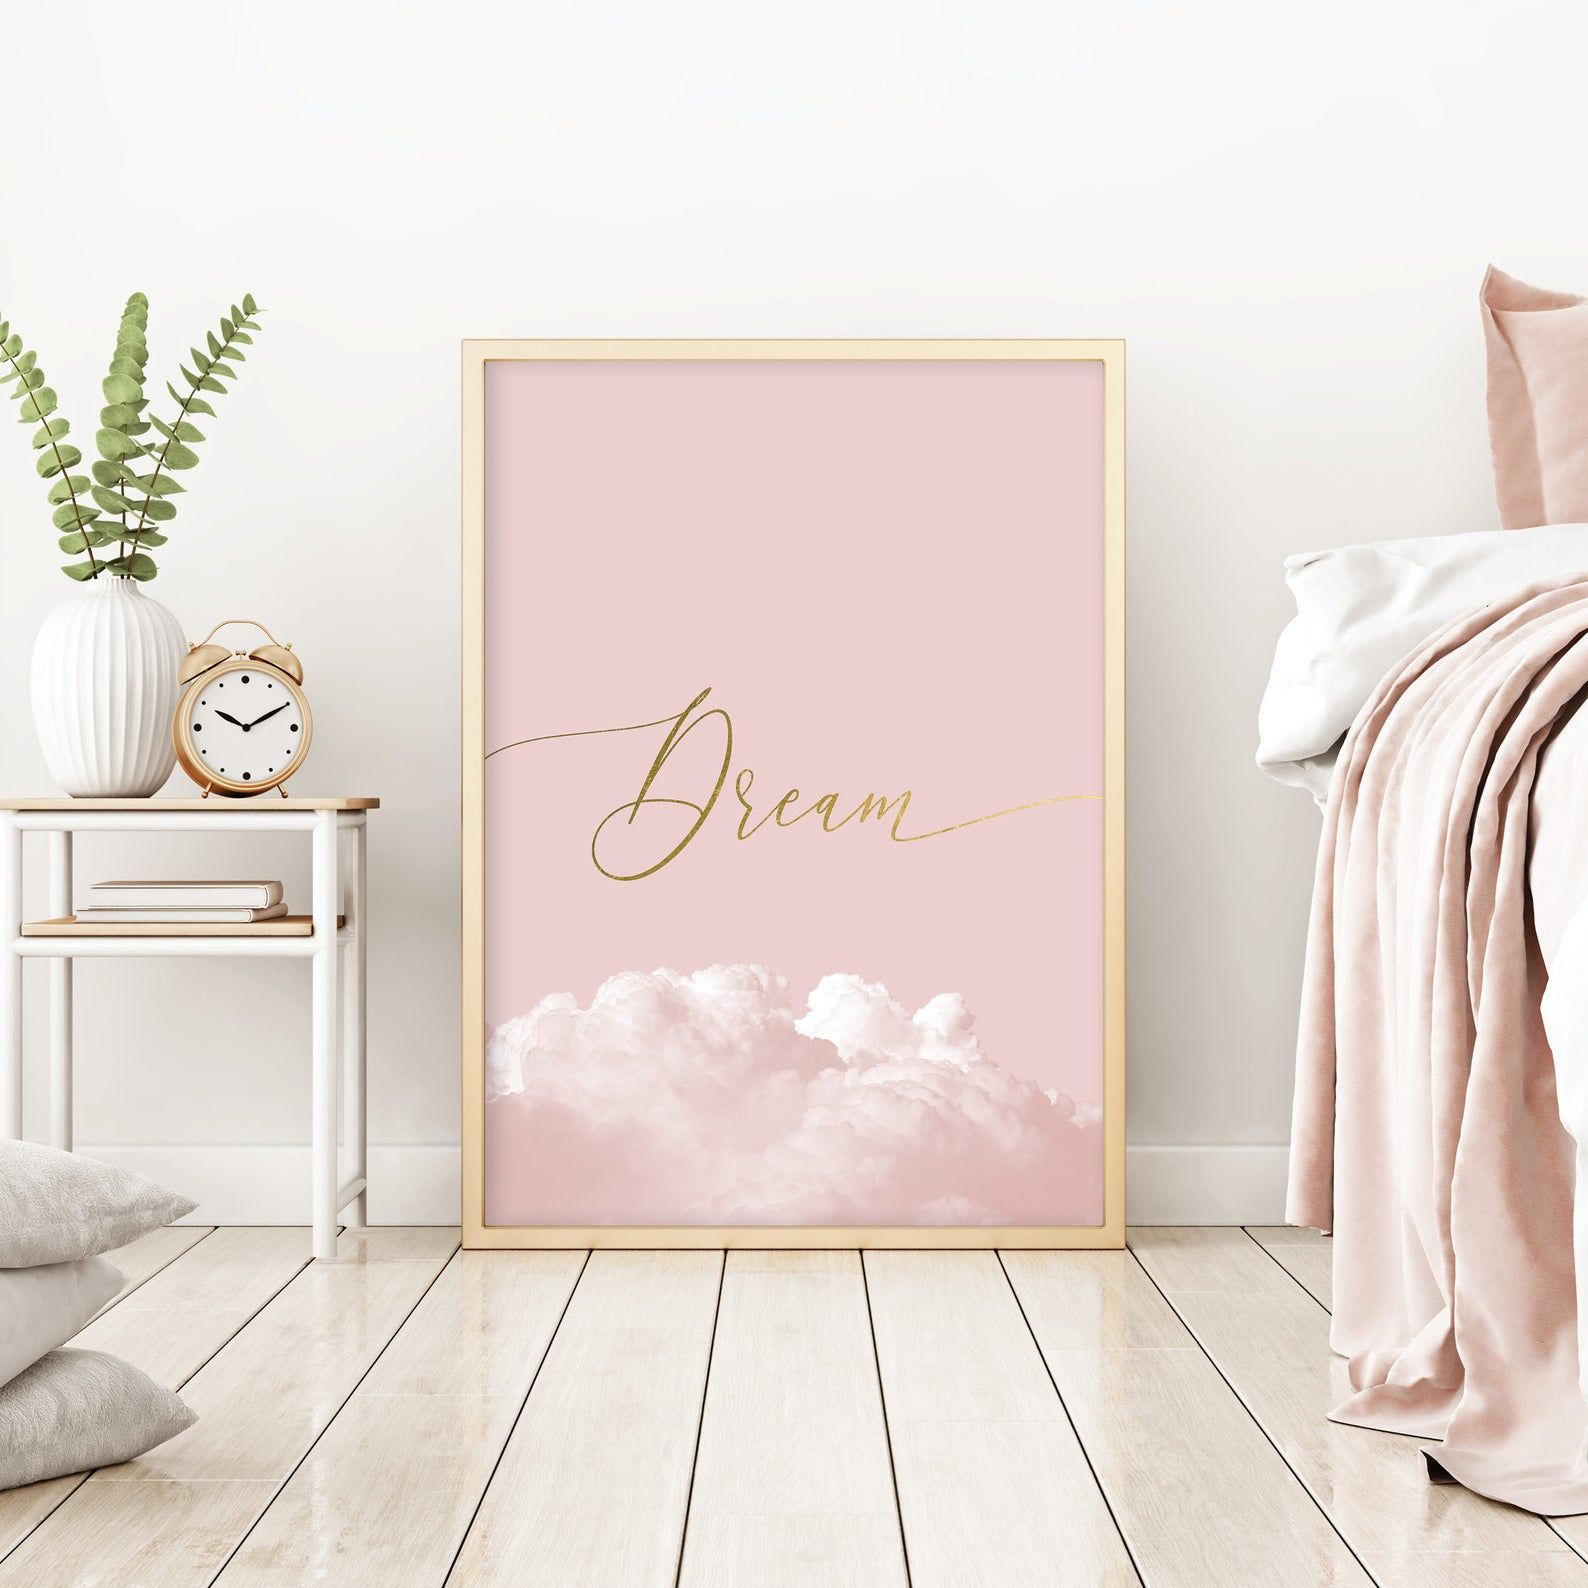 Blush Pink And Gold Bedroom Wall Decor Printable Dream Poster Pink Bedroom Wall Art Downloadable Scandi Print Dusky Pink Clouds Art Download Light Pink Rooms Pink Wall Decor Pink Room Decor